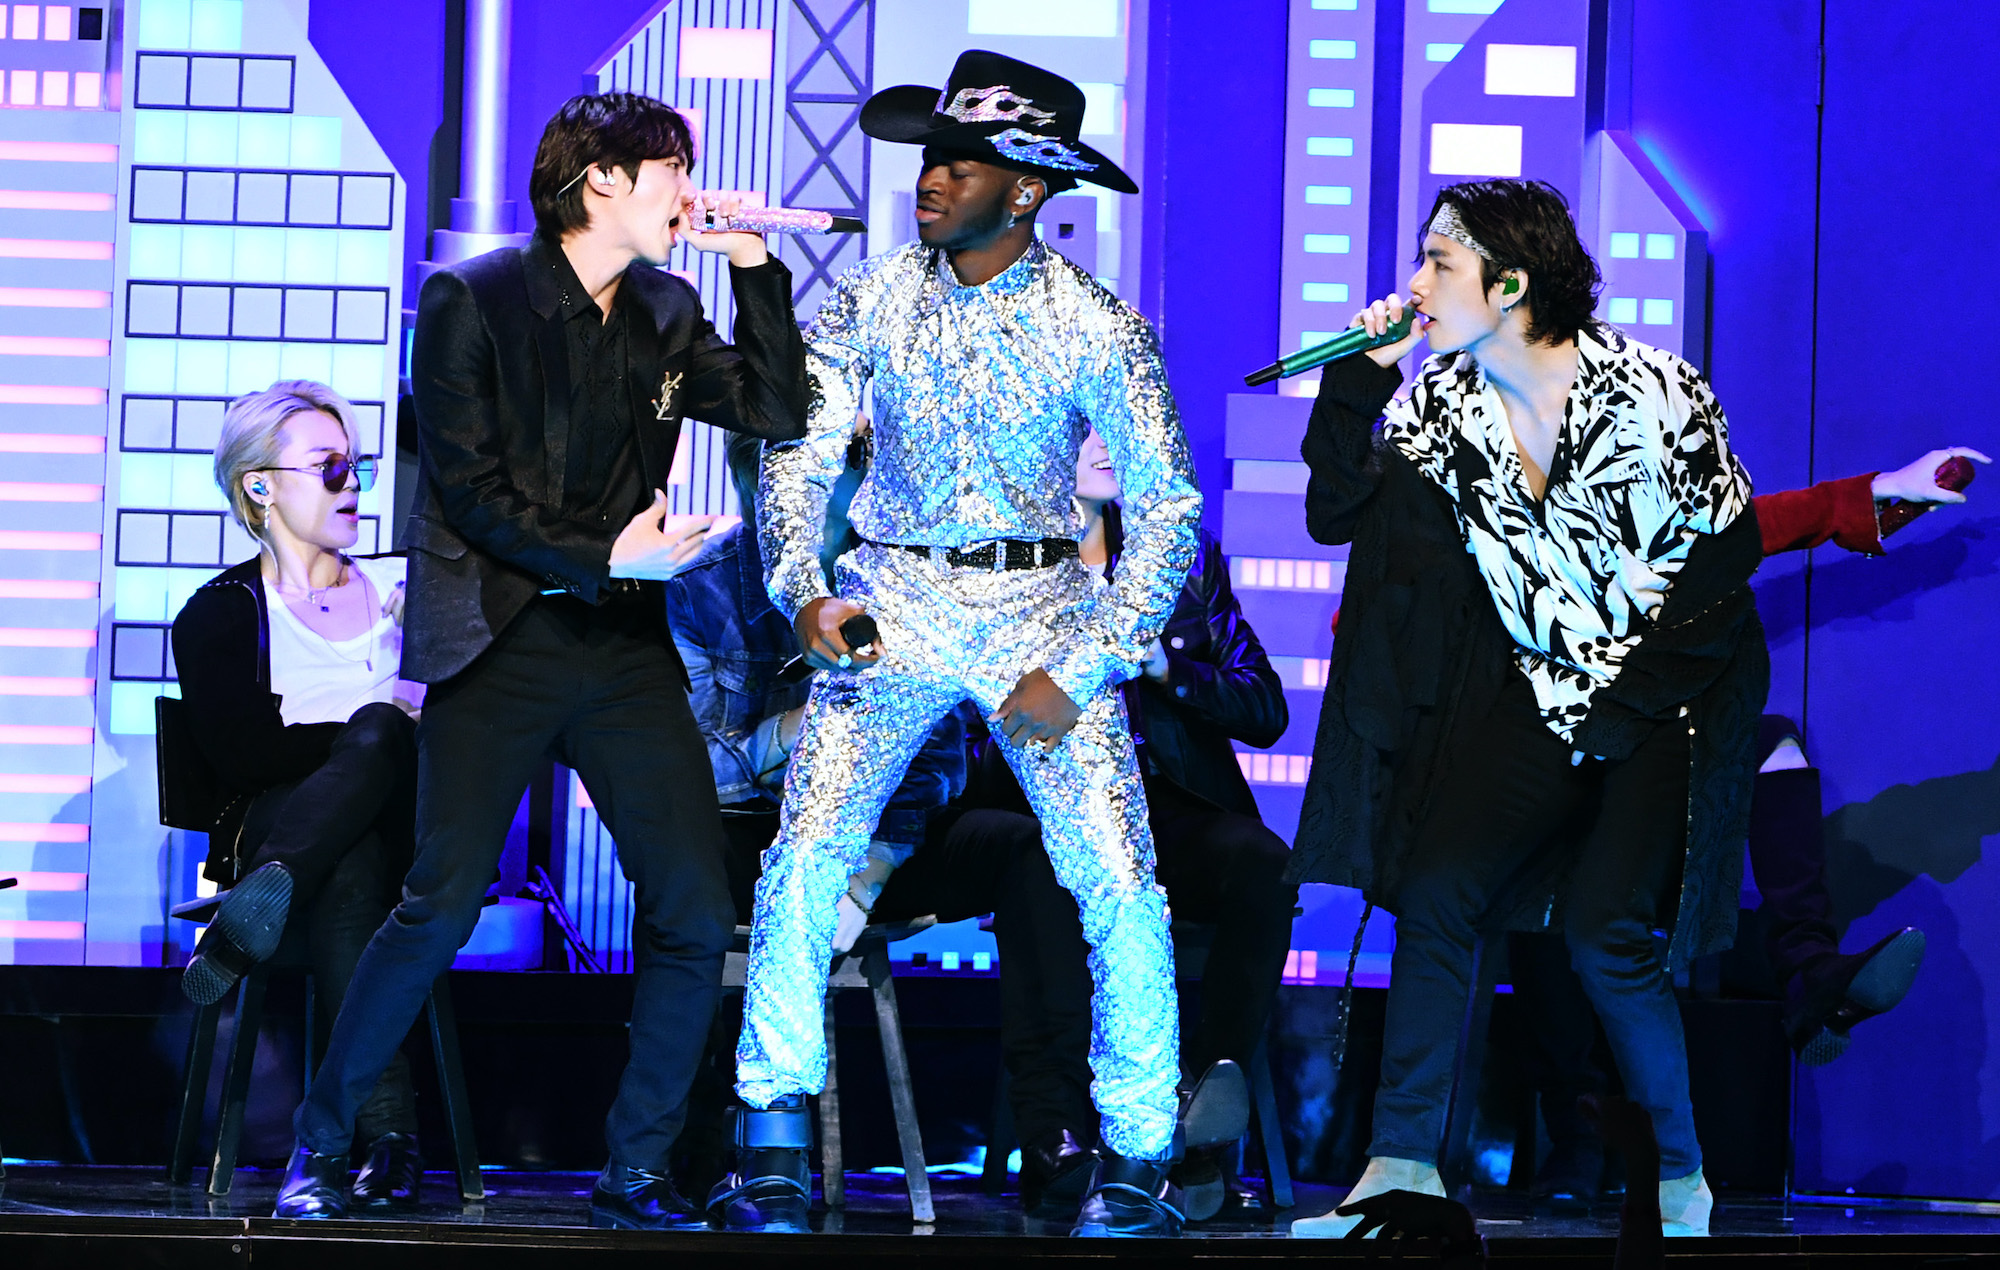 the best 2020 grammys performances from lil nas x and bts to billie eilish https www nme com blogs nme blogs the best 2020 grammys performances from lil nas x and bts to billie eilish 2601396